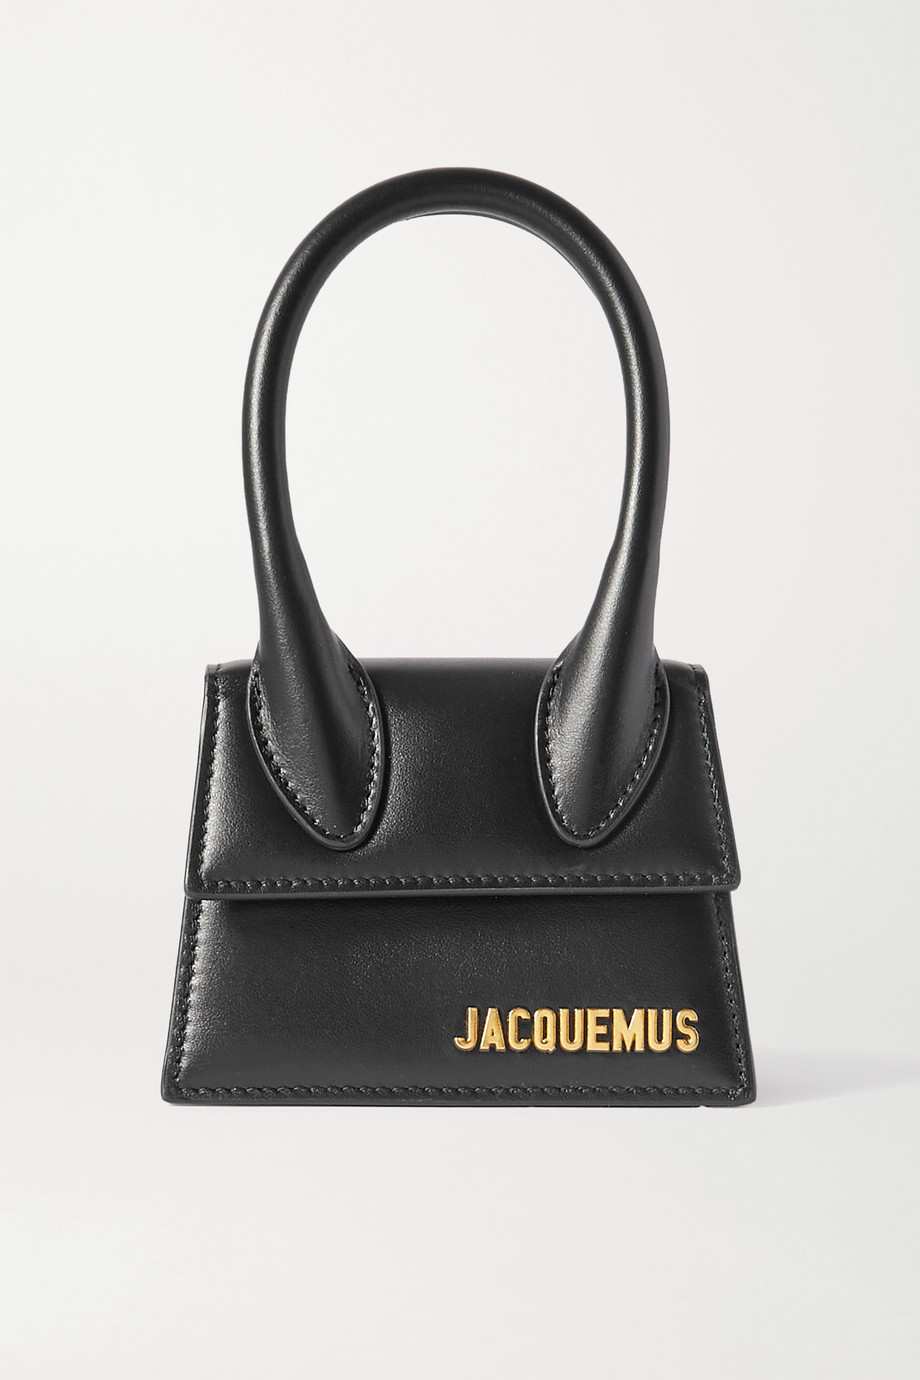 Jacquemus Le Chiquito mini leather tote